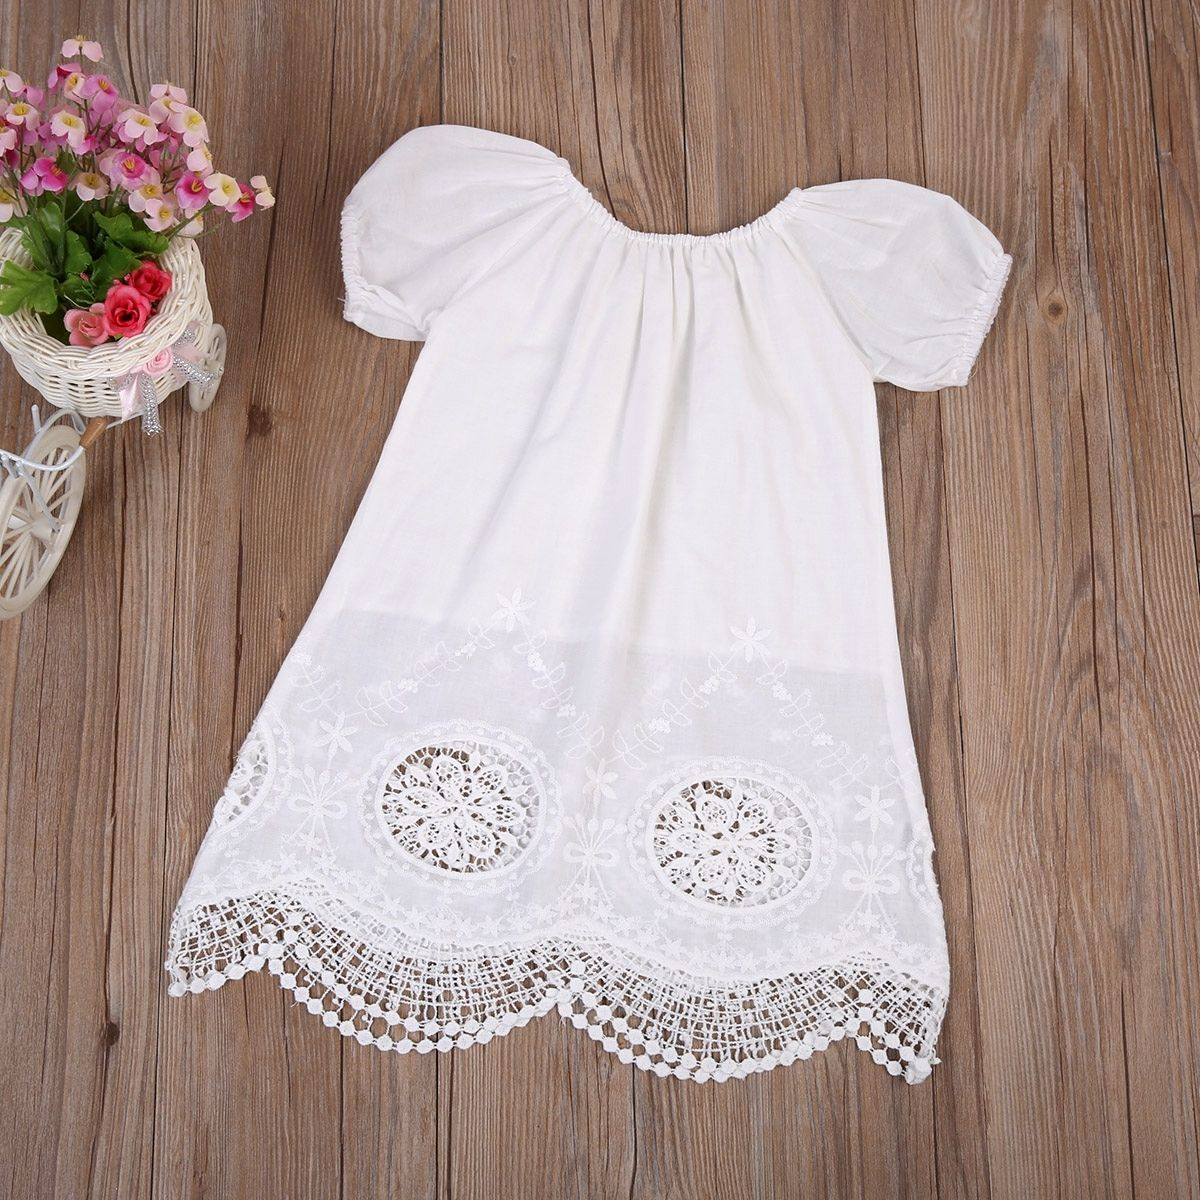 0-4Y White Hallow Out Fashion Kids Baby Girls Short Sleeve Cover Ups Beach Vestidos Cotton Blend Sundress Clothes